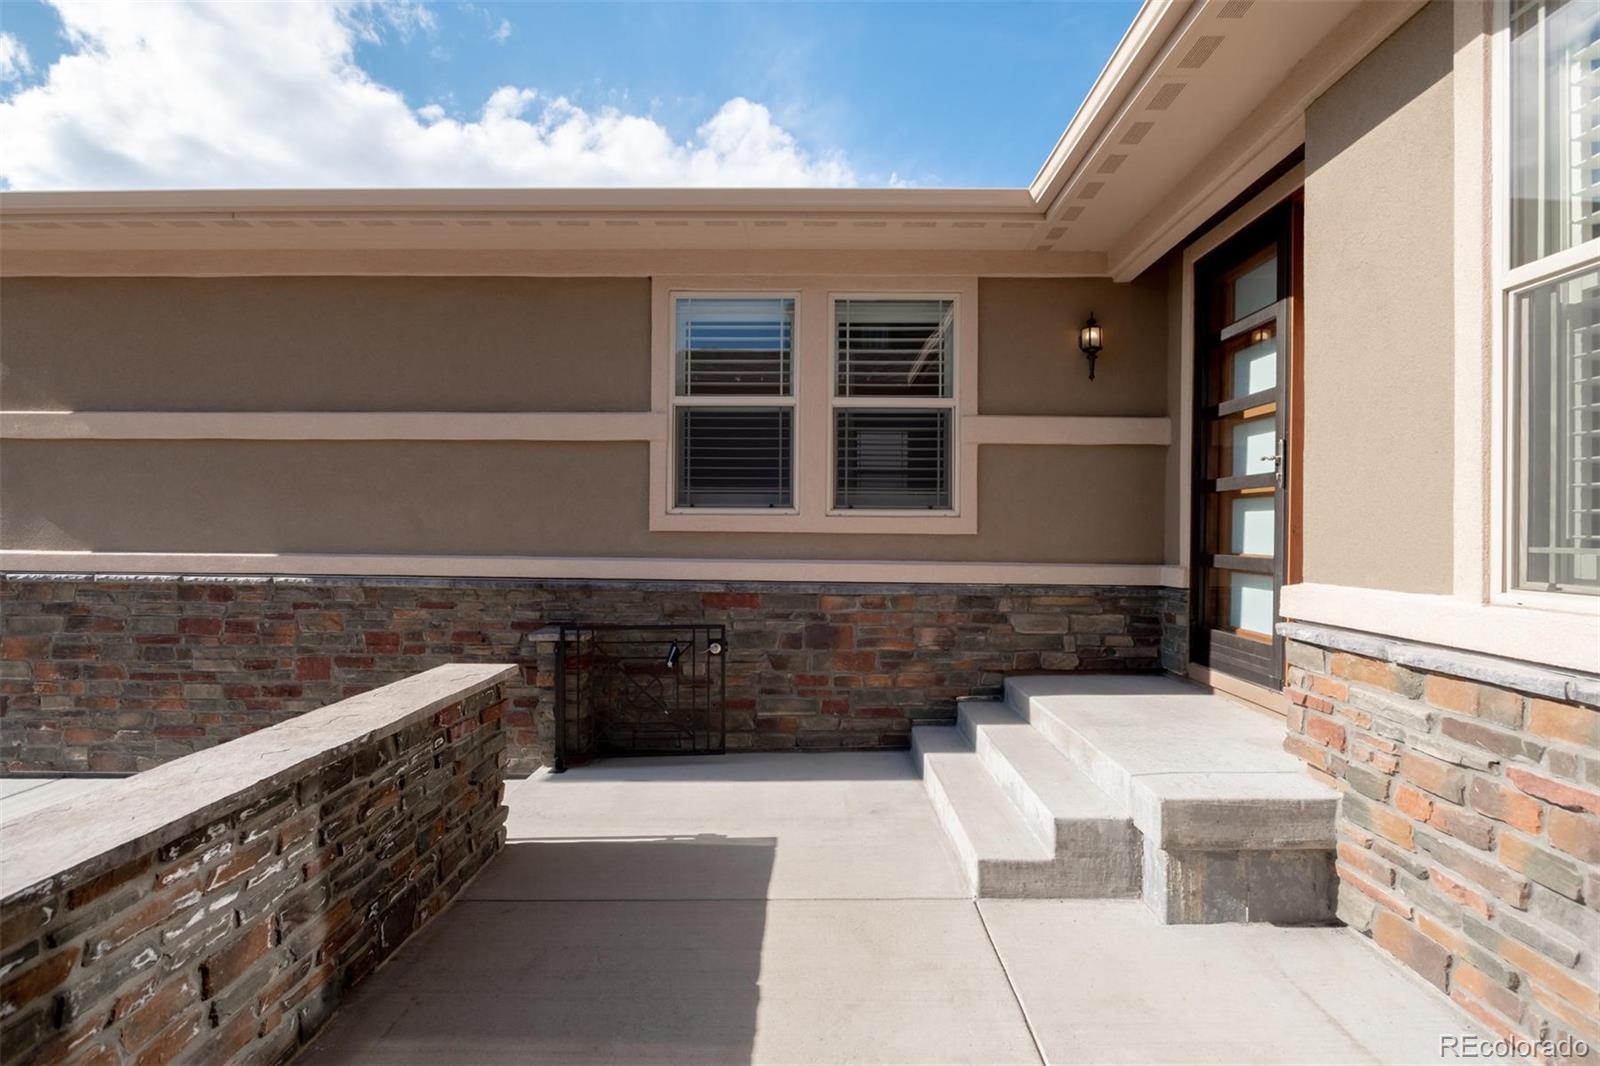 MLS# 5498200 - 40 - 11692 Spotted Street, Parker, CO 80134